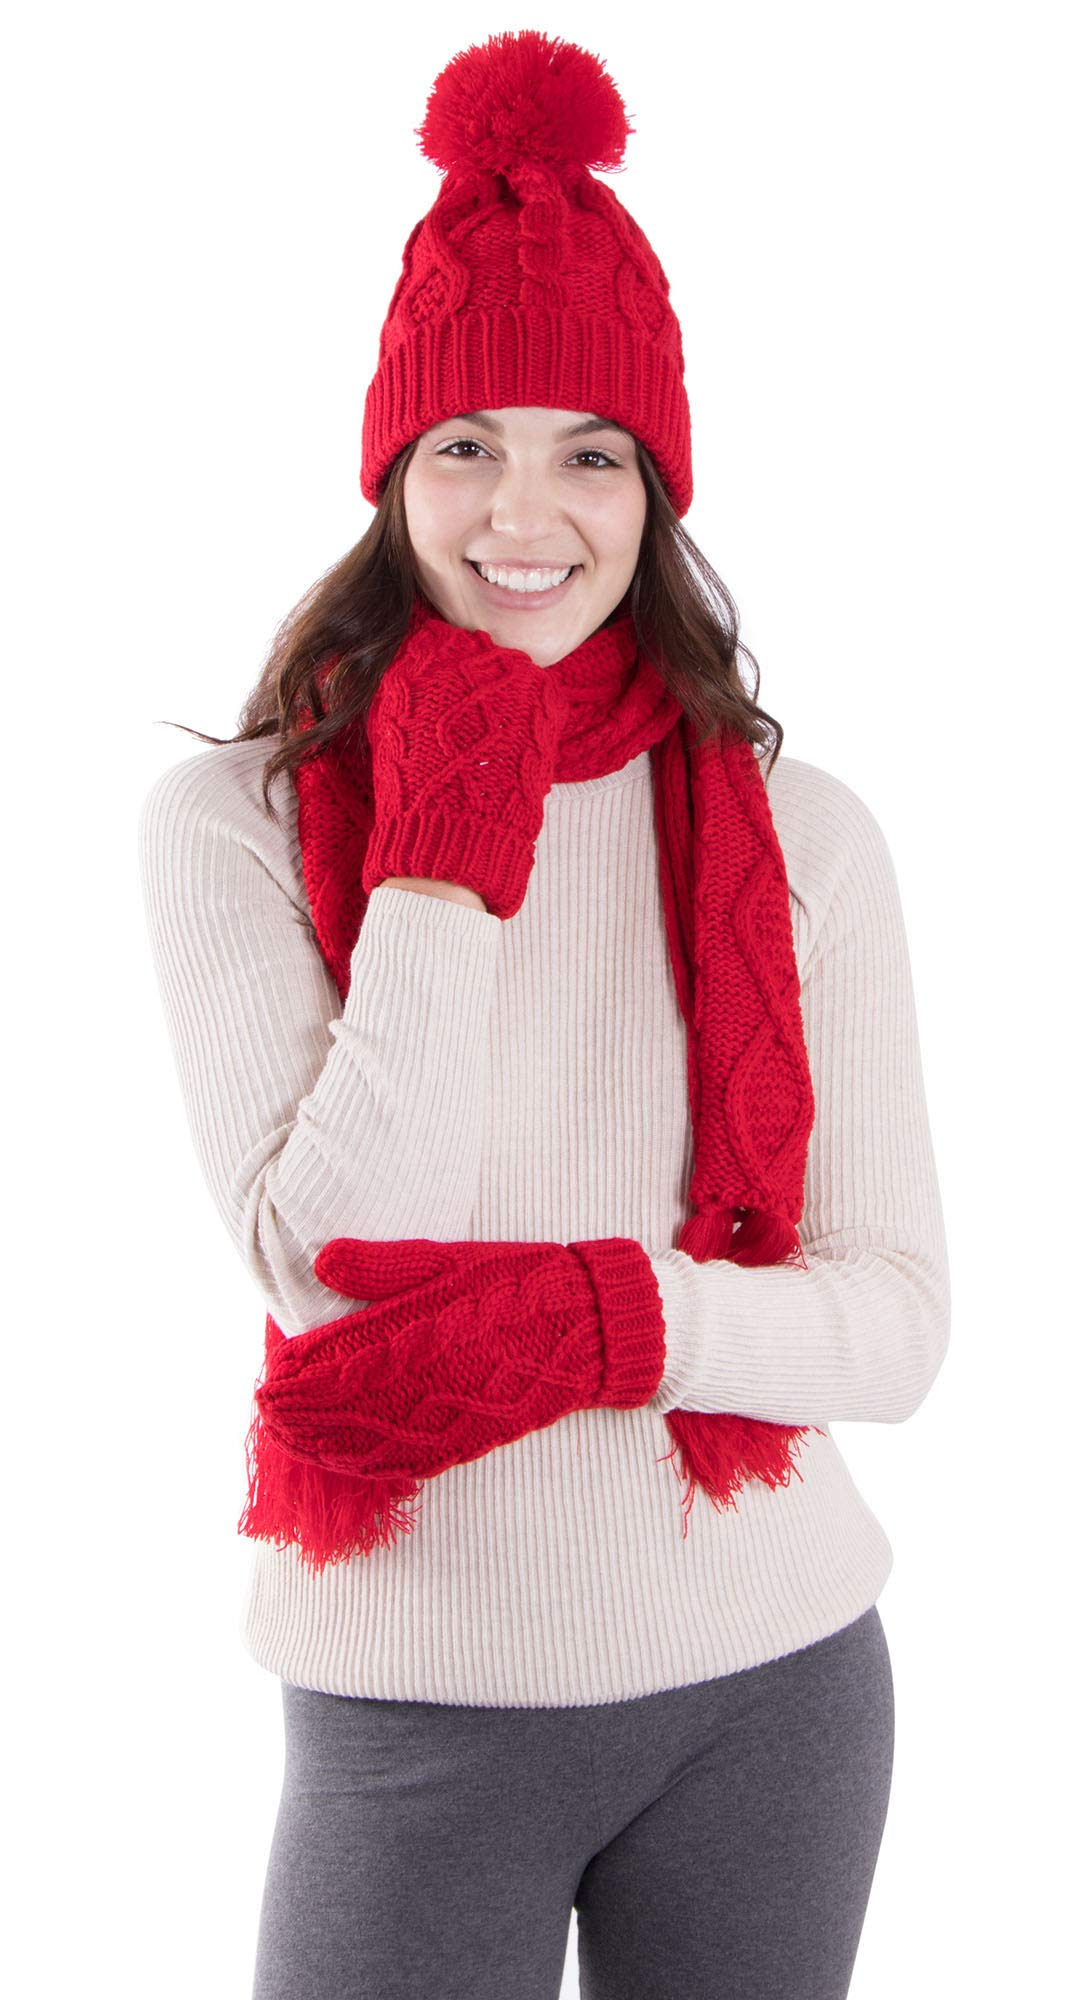 ANDORRA - 3 in 1 - Soft Warm Thick Cable Hat Scarf & Gloves Winter Set, Red by Andorra (Image #2)